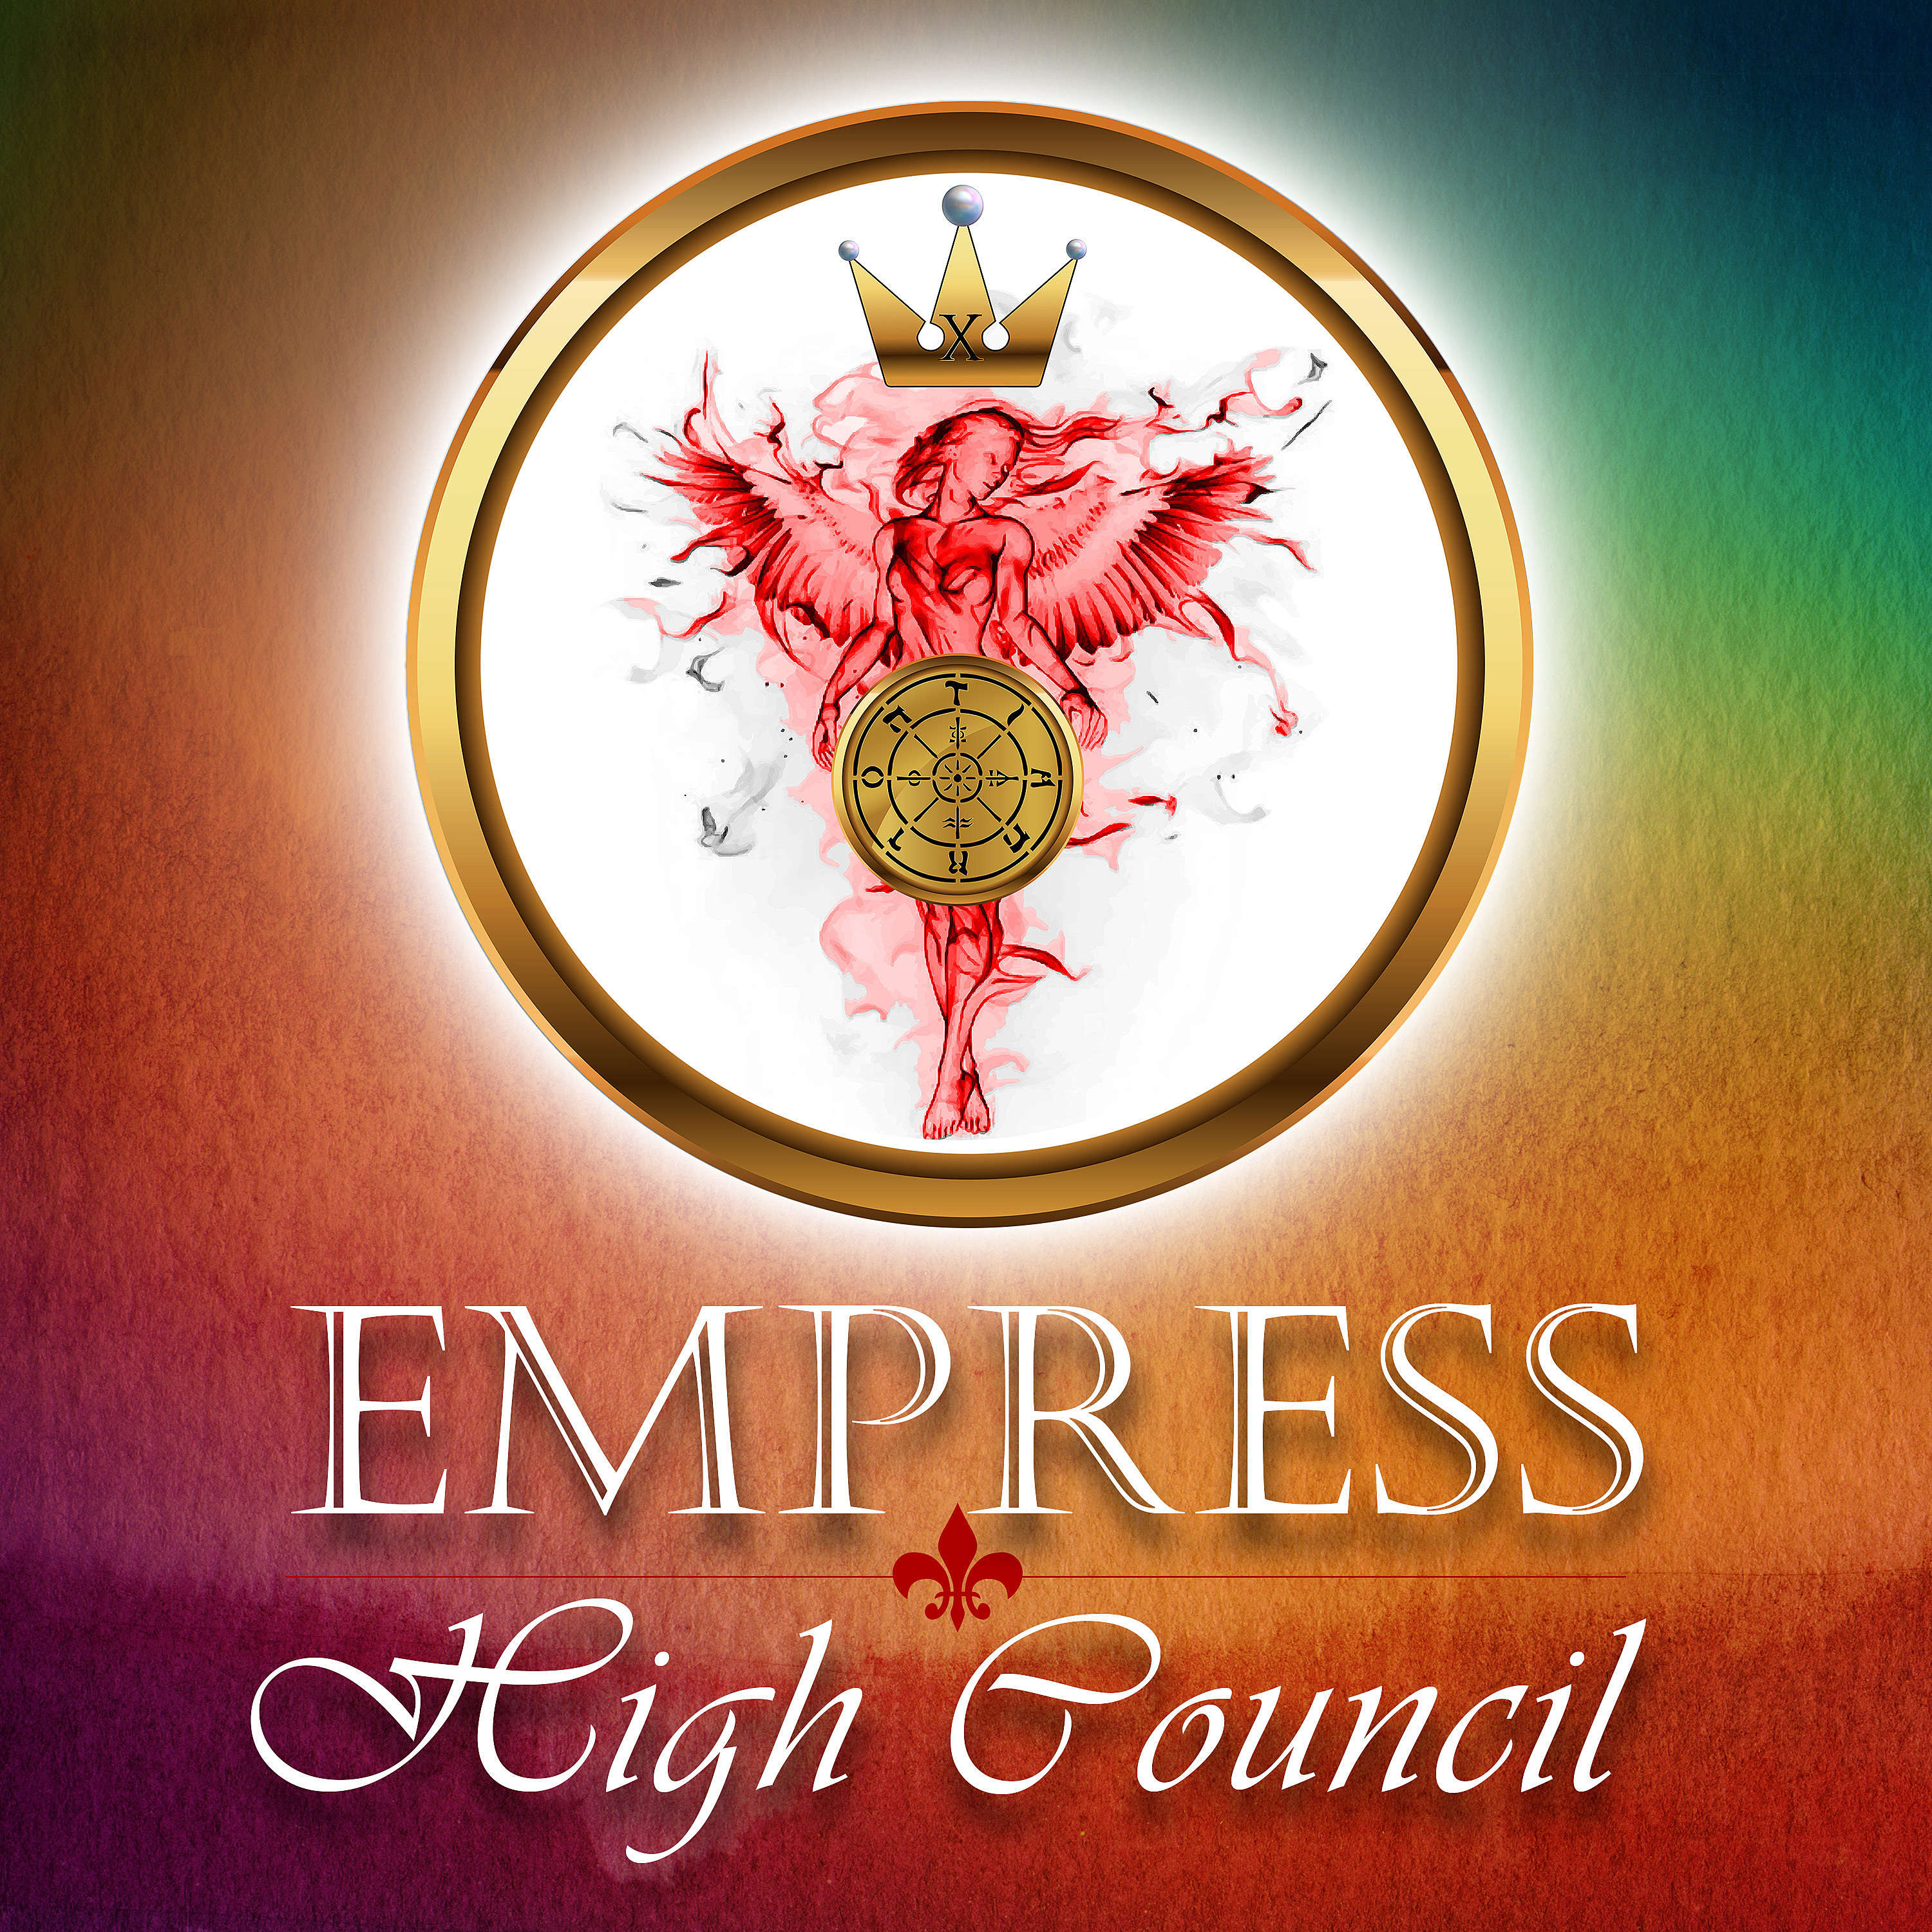 Empress High Council: Ask the Alchemist